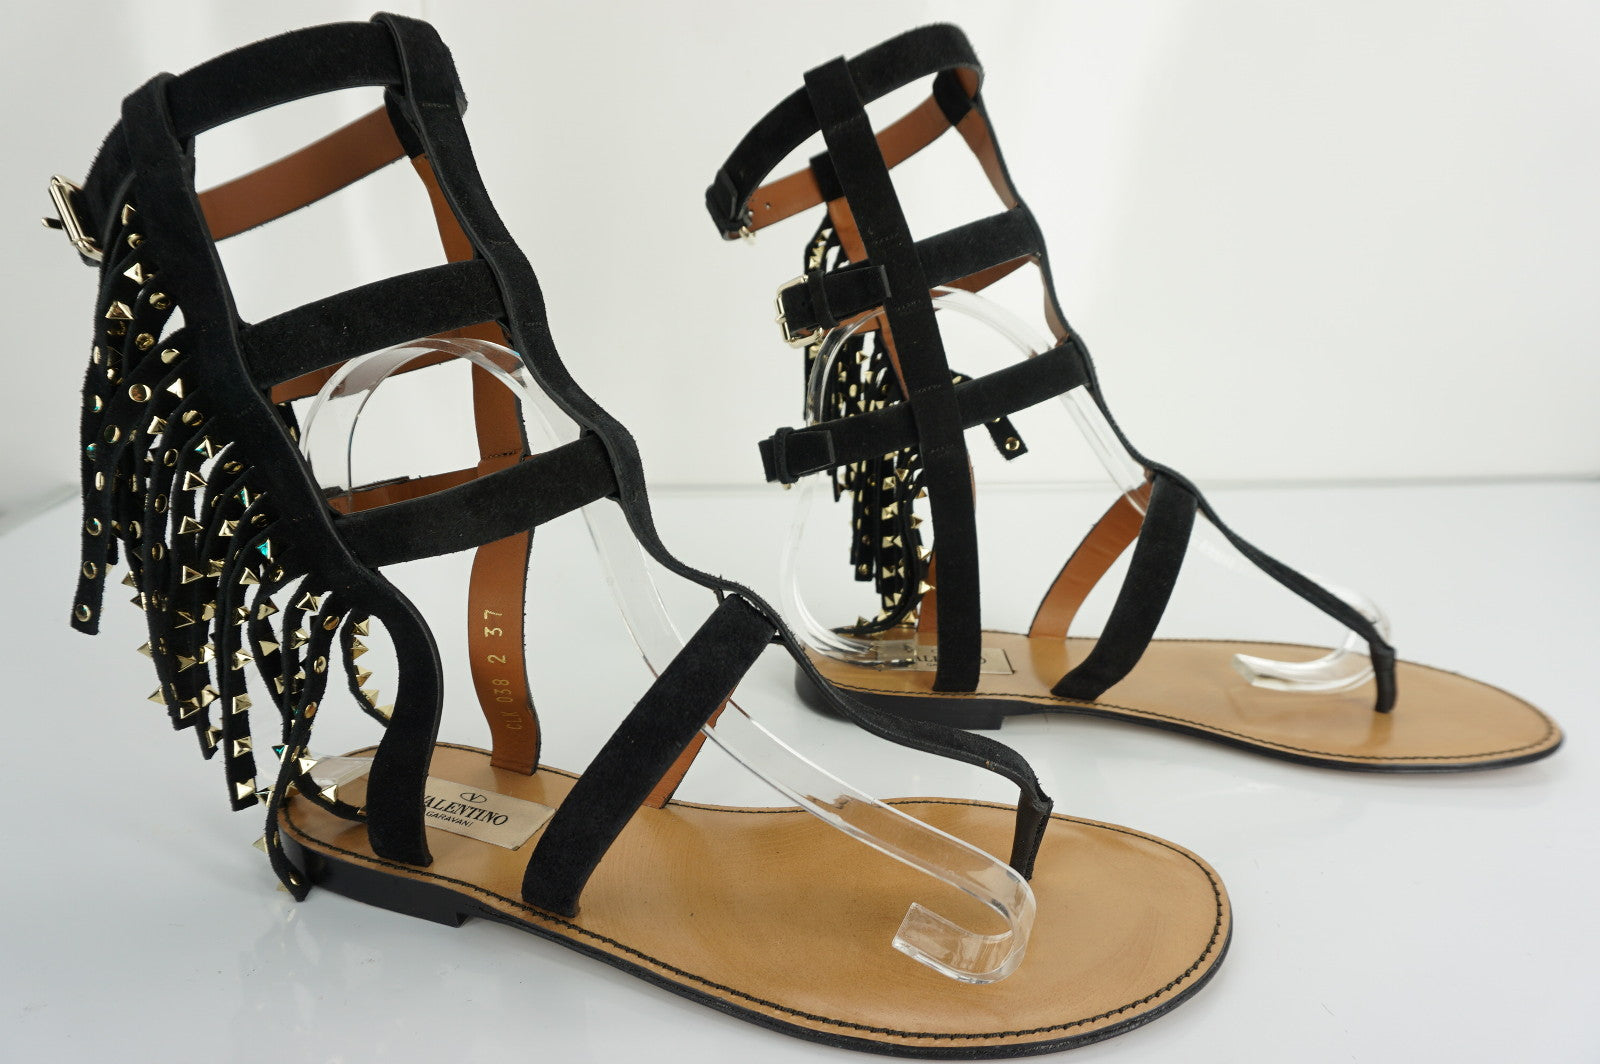 Valentino Garavani Black Leather Rockstud Gladiator Flat Sandals SZ 37 NIB $1675